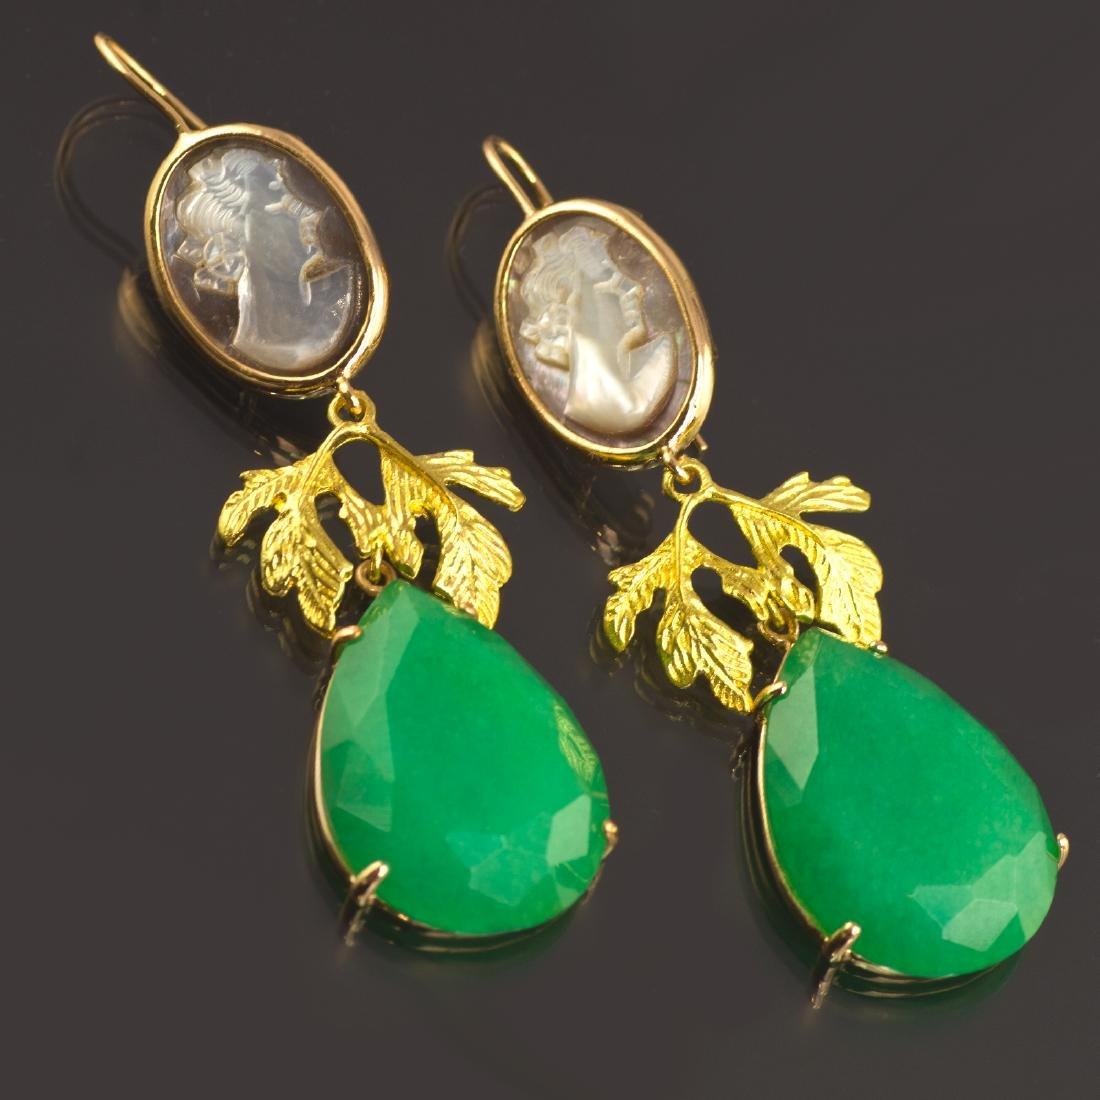 Classic Earrings with Jade and Cameo - 3